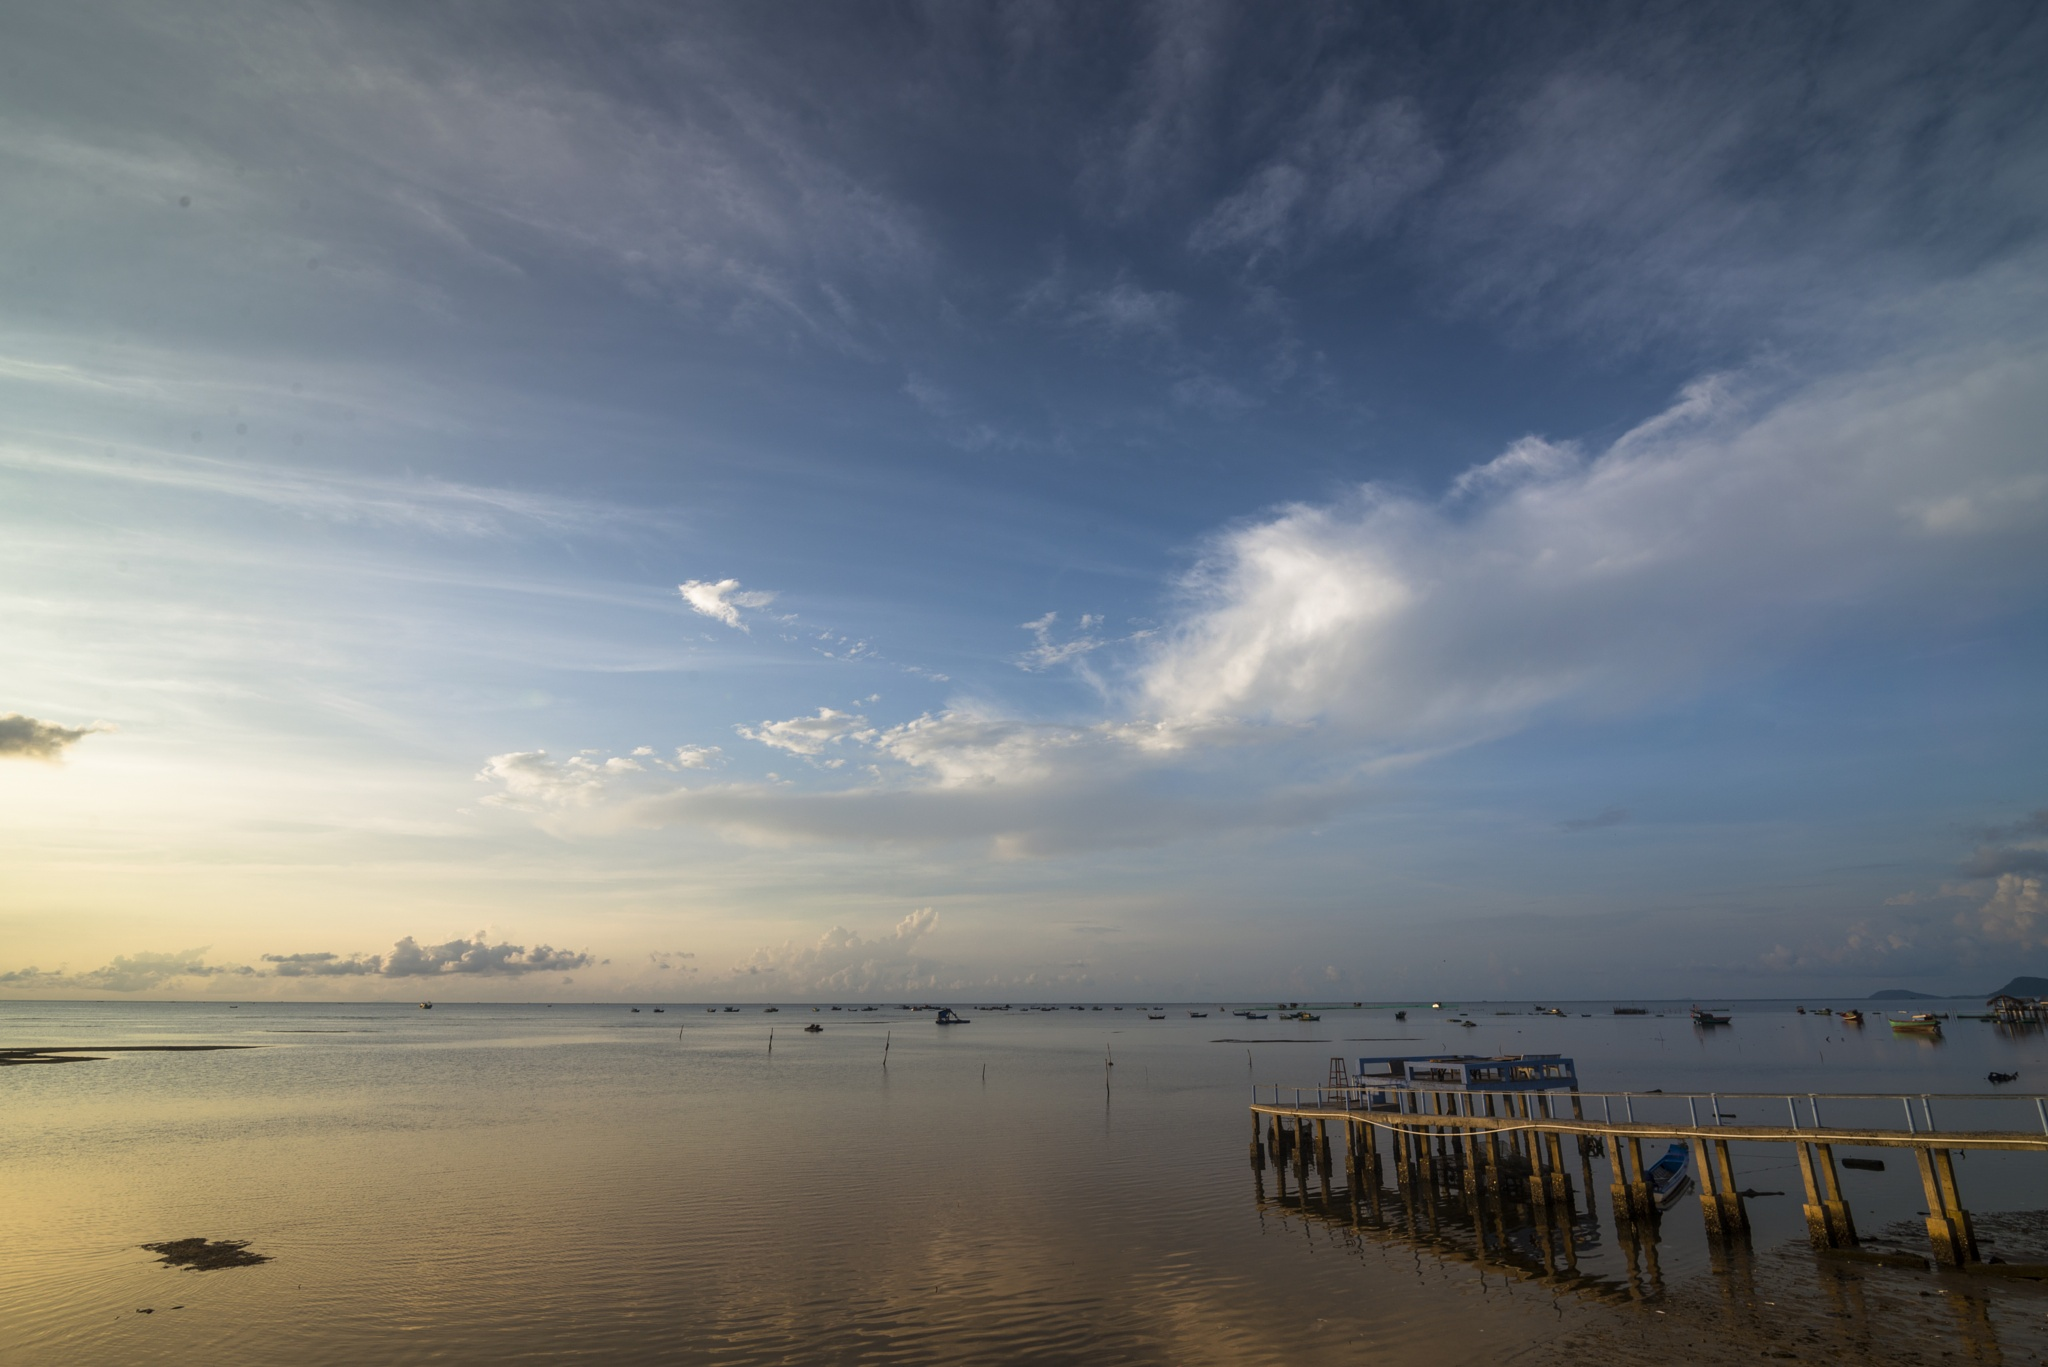 Peaceful sunrise at Ham Ninh fishing village by Quang Le